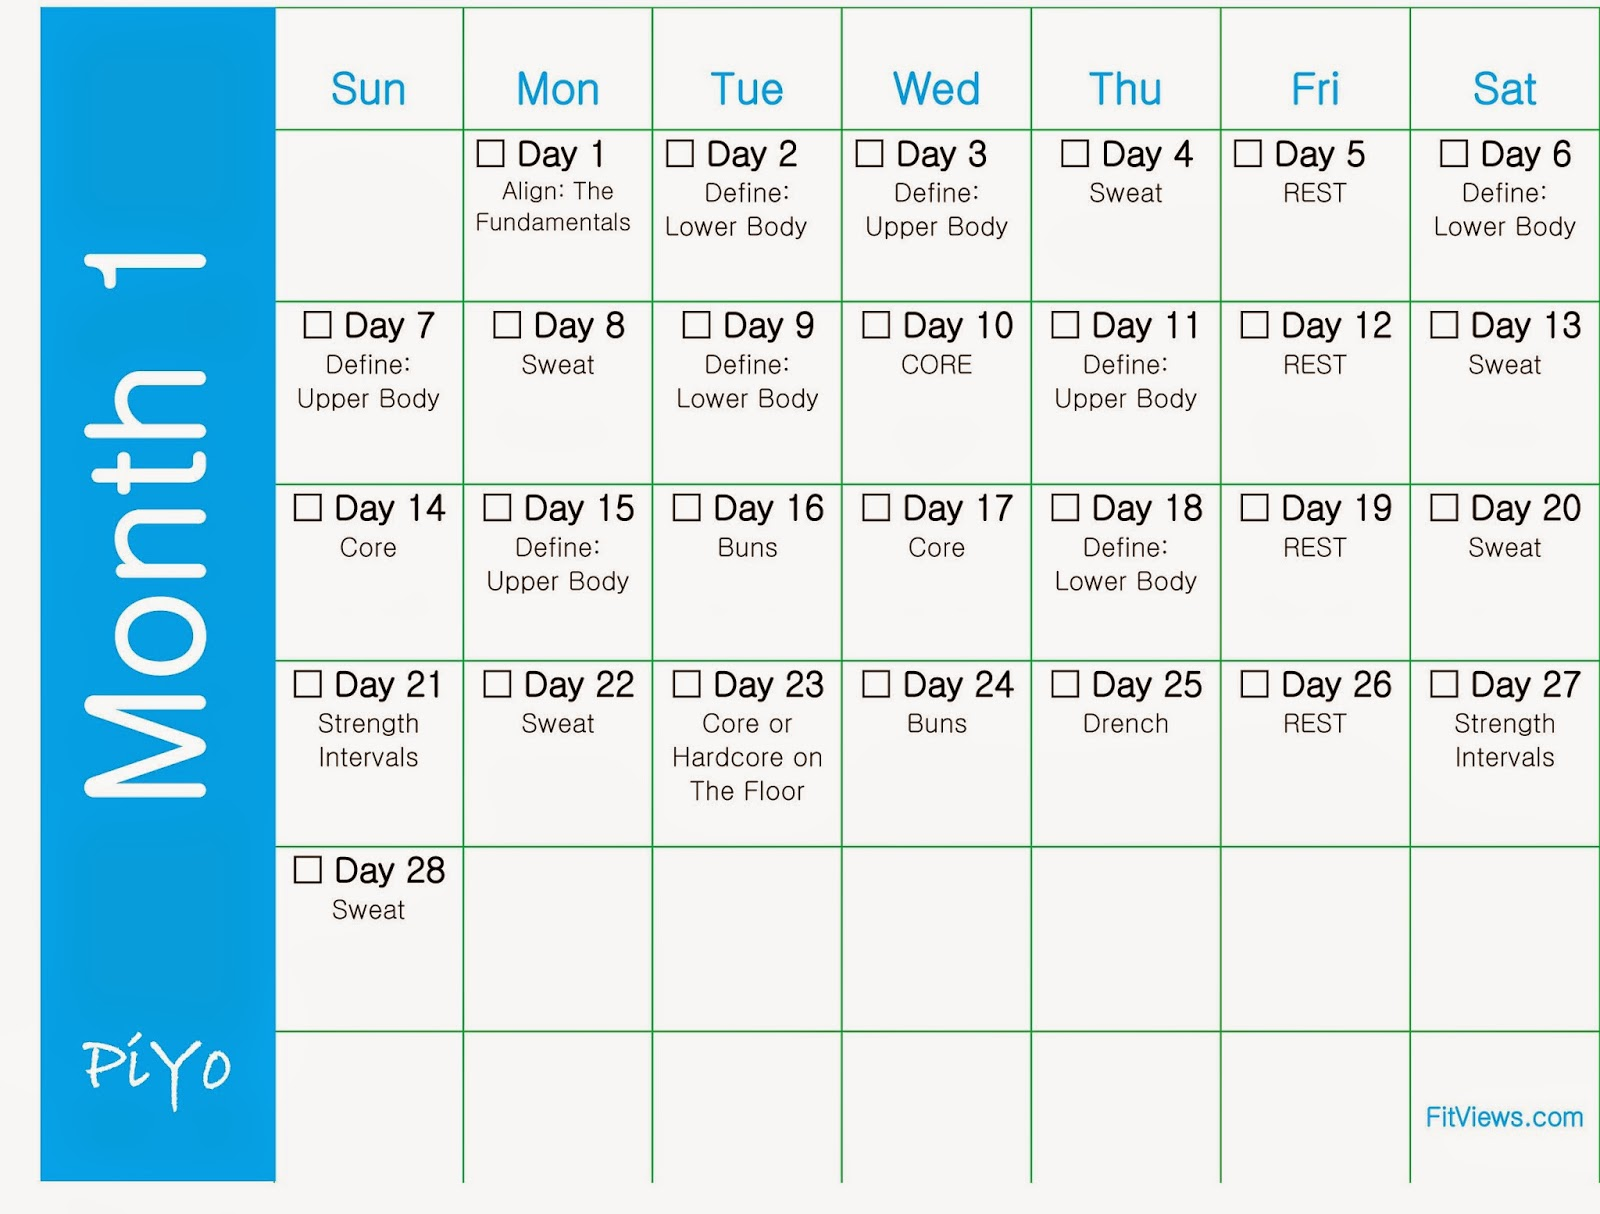 Ilates Monthly Calendar Results : Piyo workout calendar and schedule to download or print